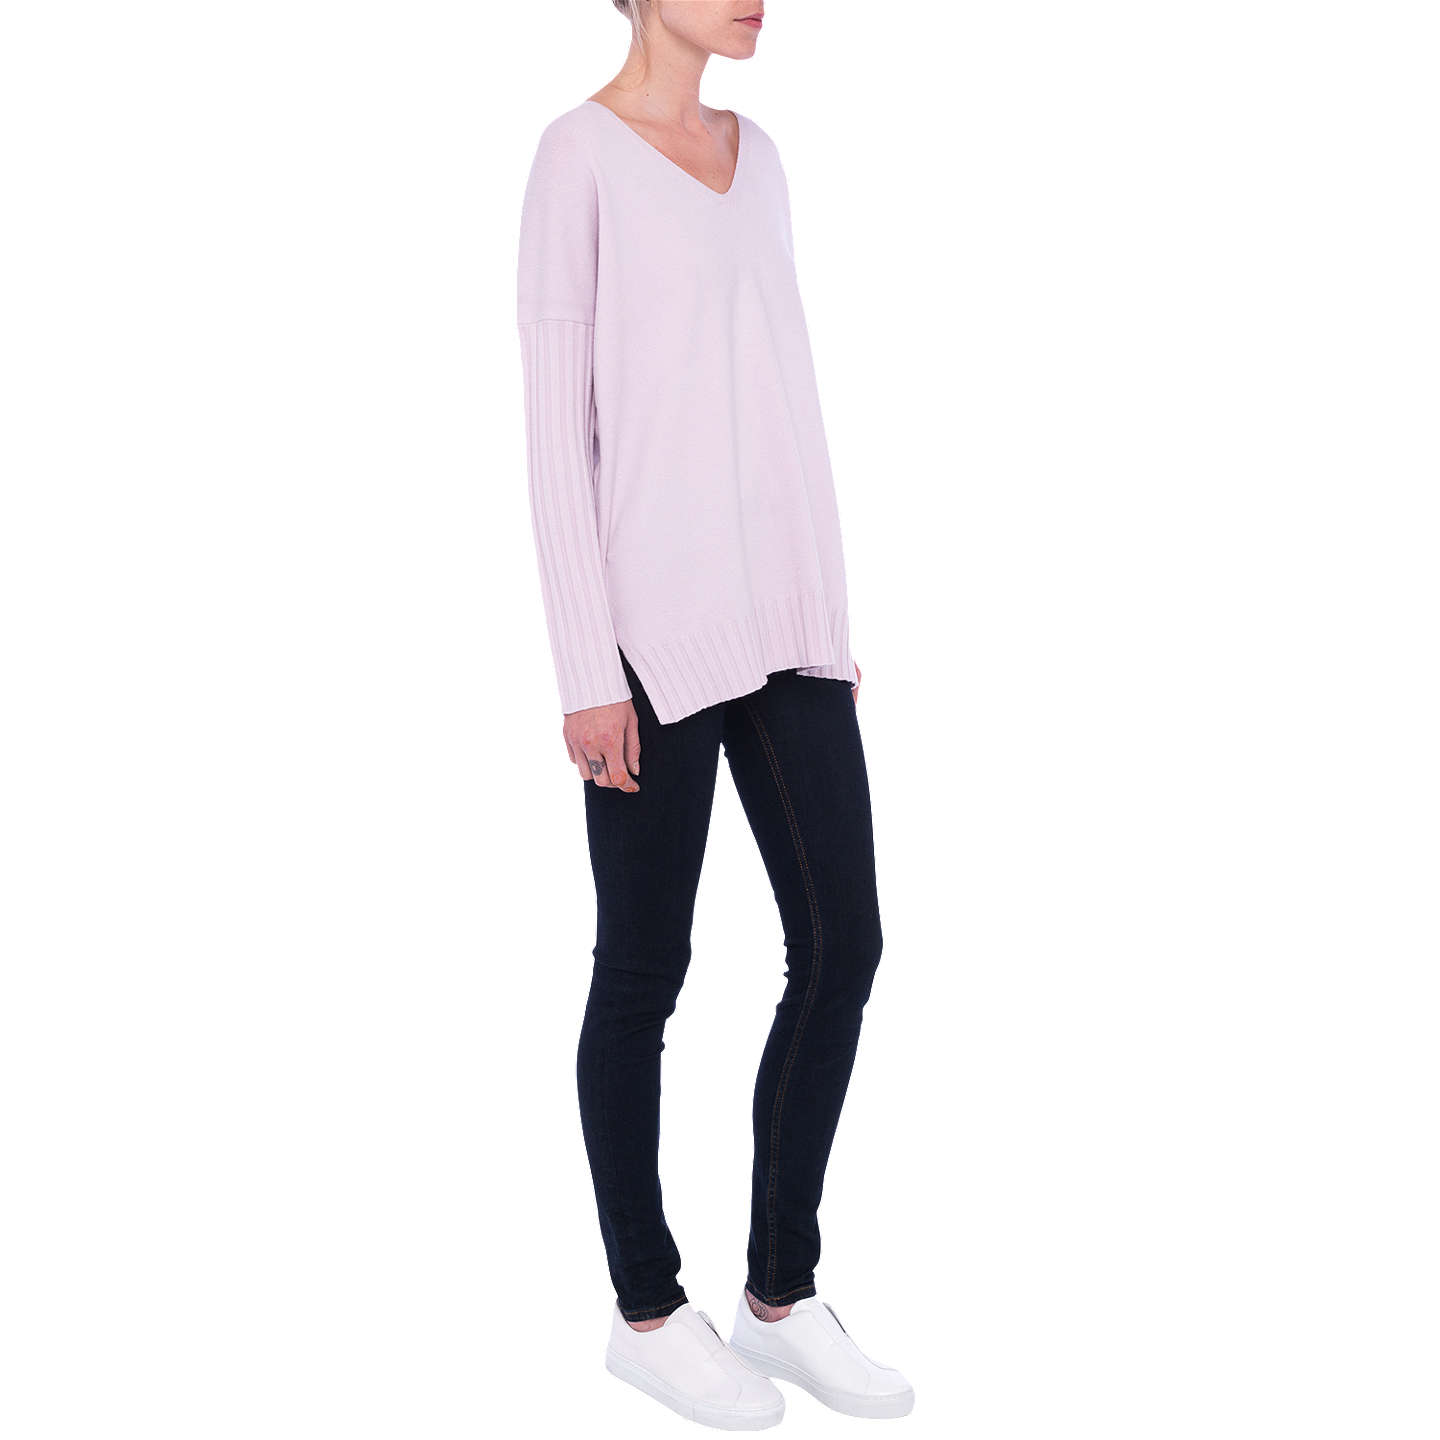 BuyFrench Connection Vhari Ribbed V-Neck Jumper, Roxy Kiss, XS Online at johnlewis.com